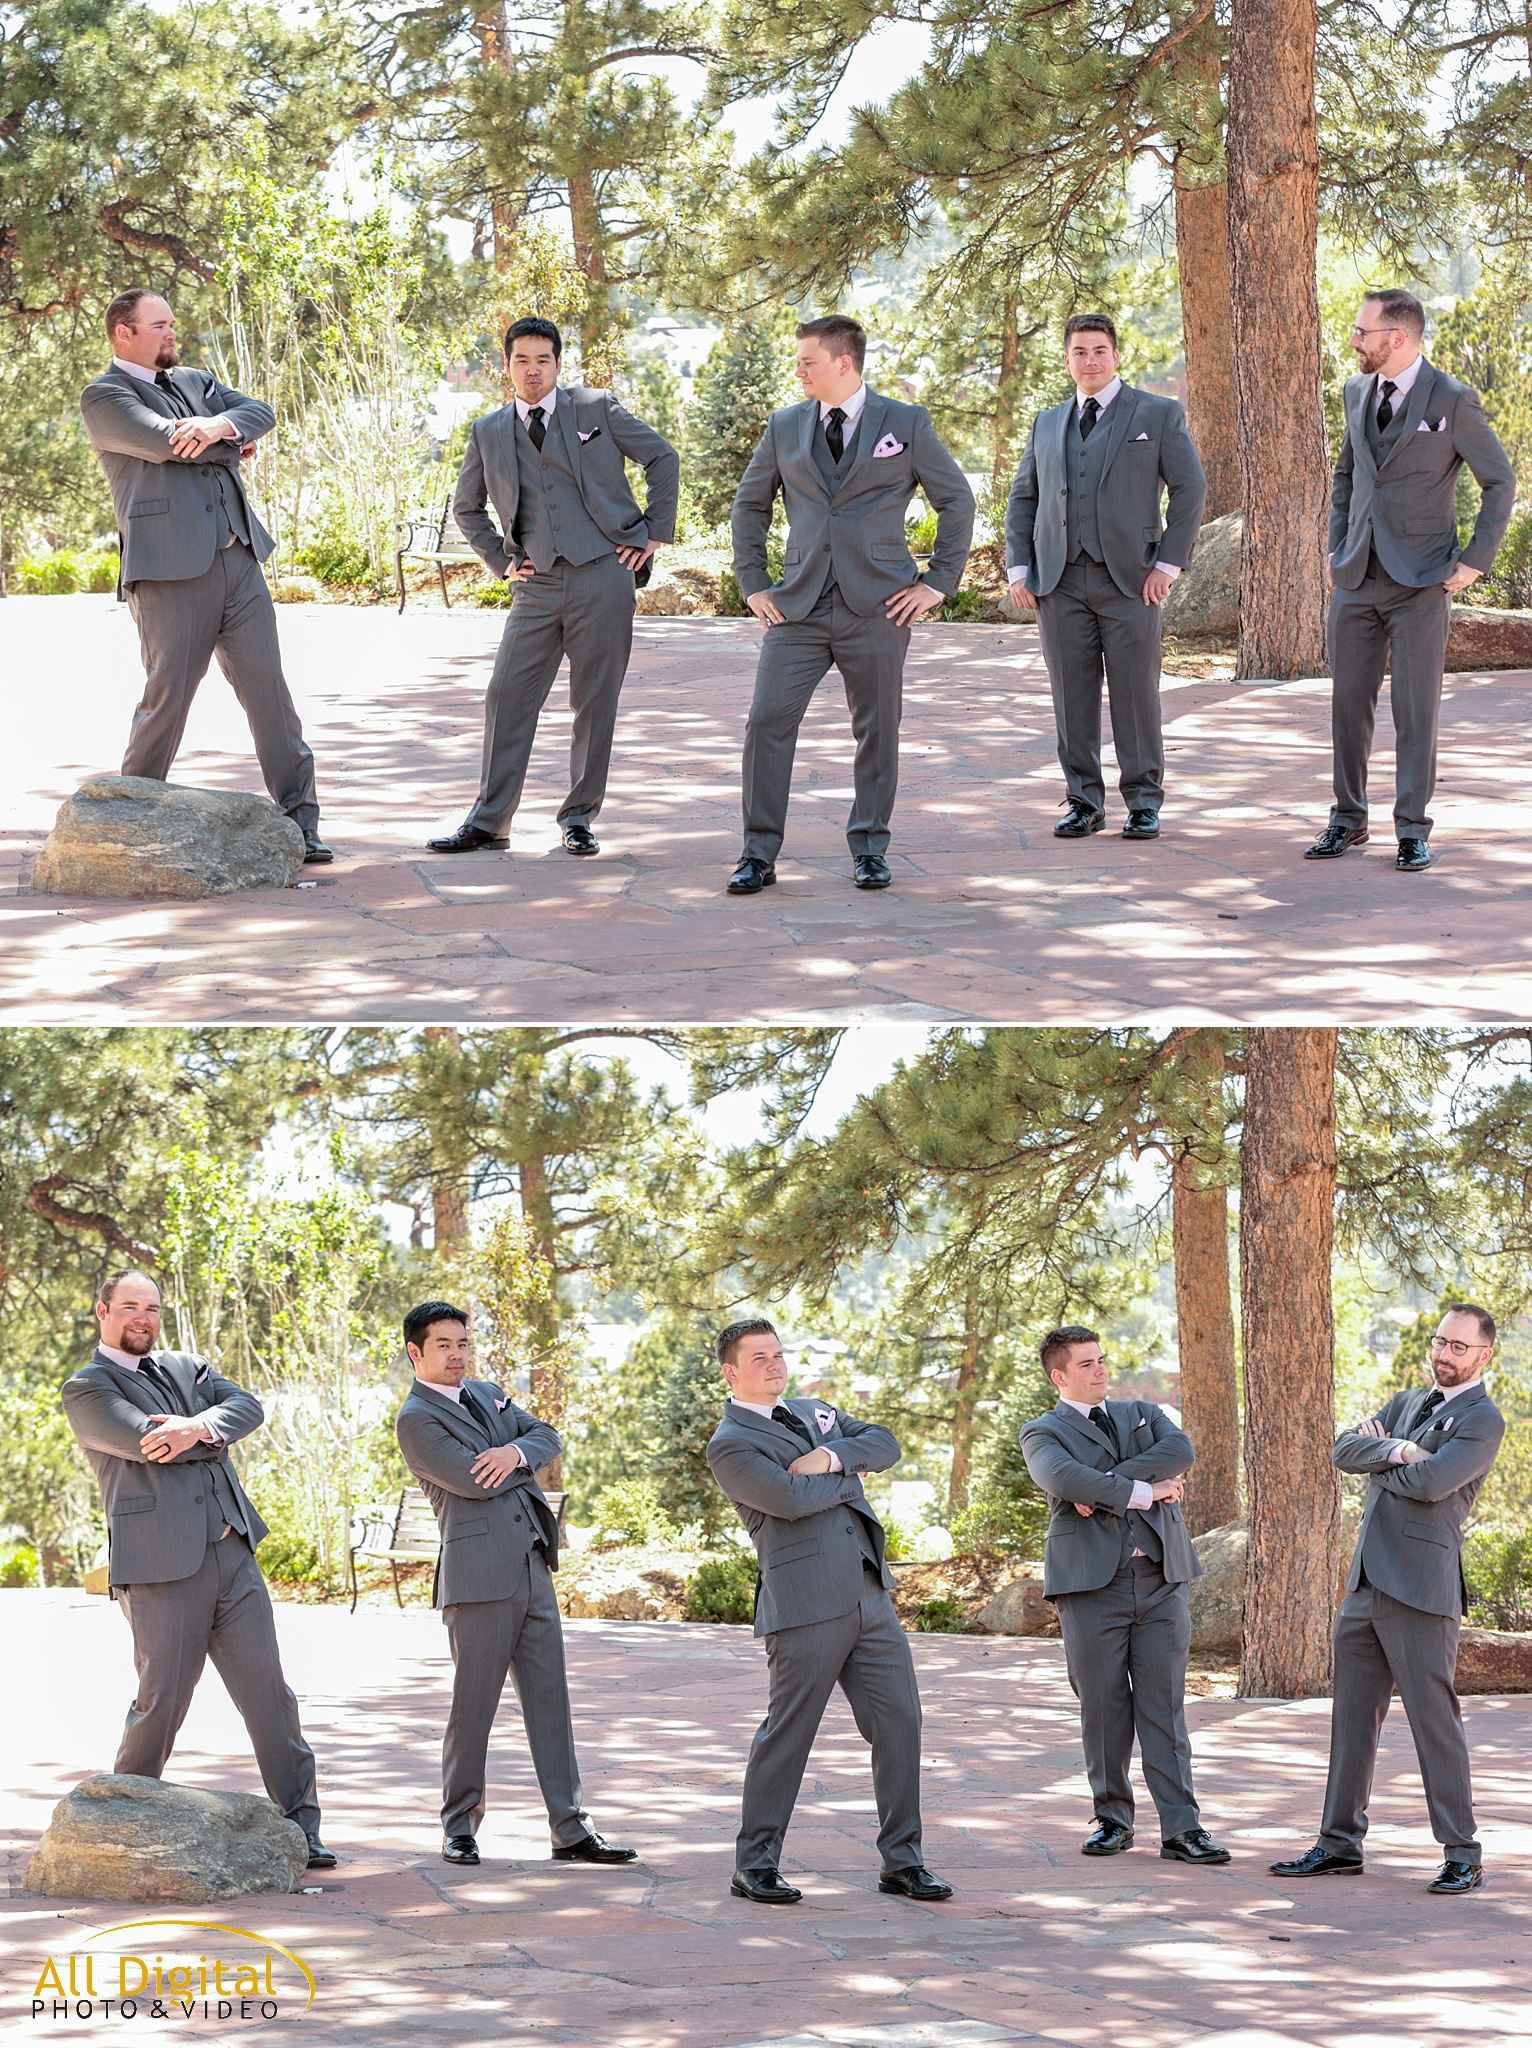 Groom & Groomsmen portraits at the Stanley Hotel in Estes Park, Colorado